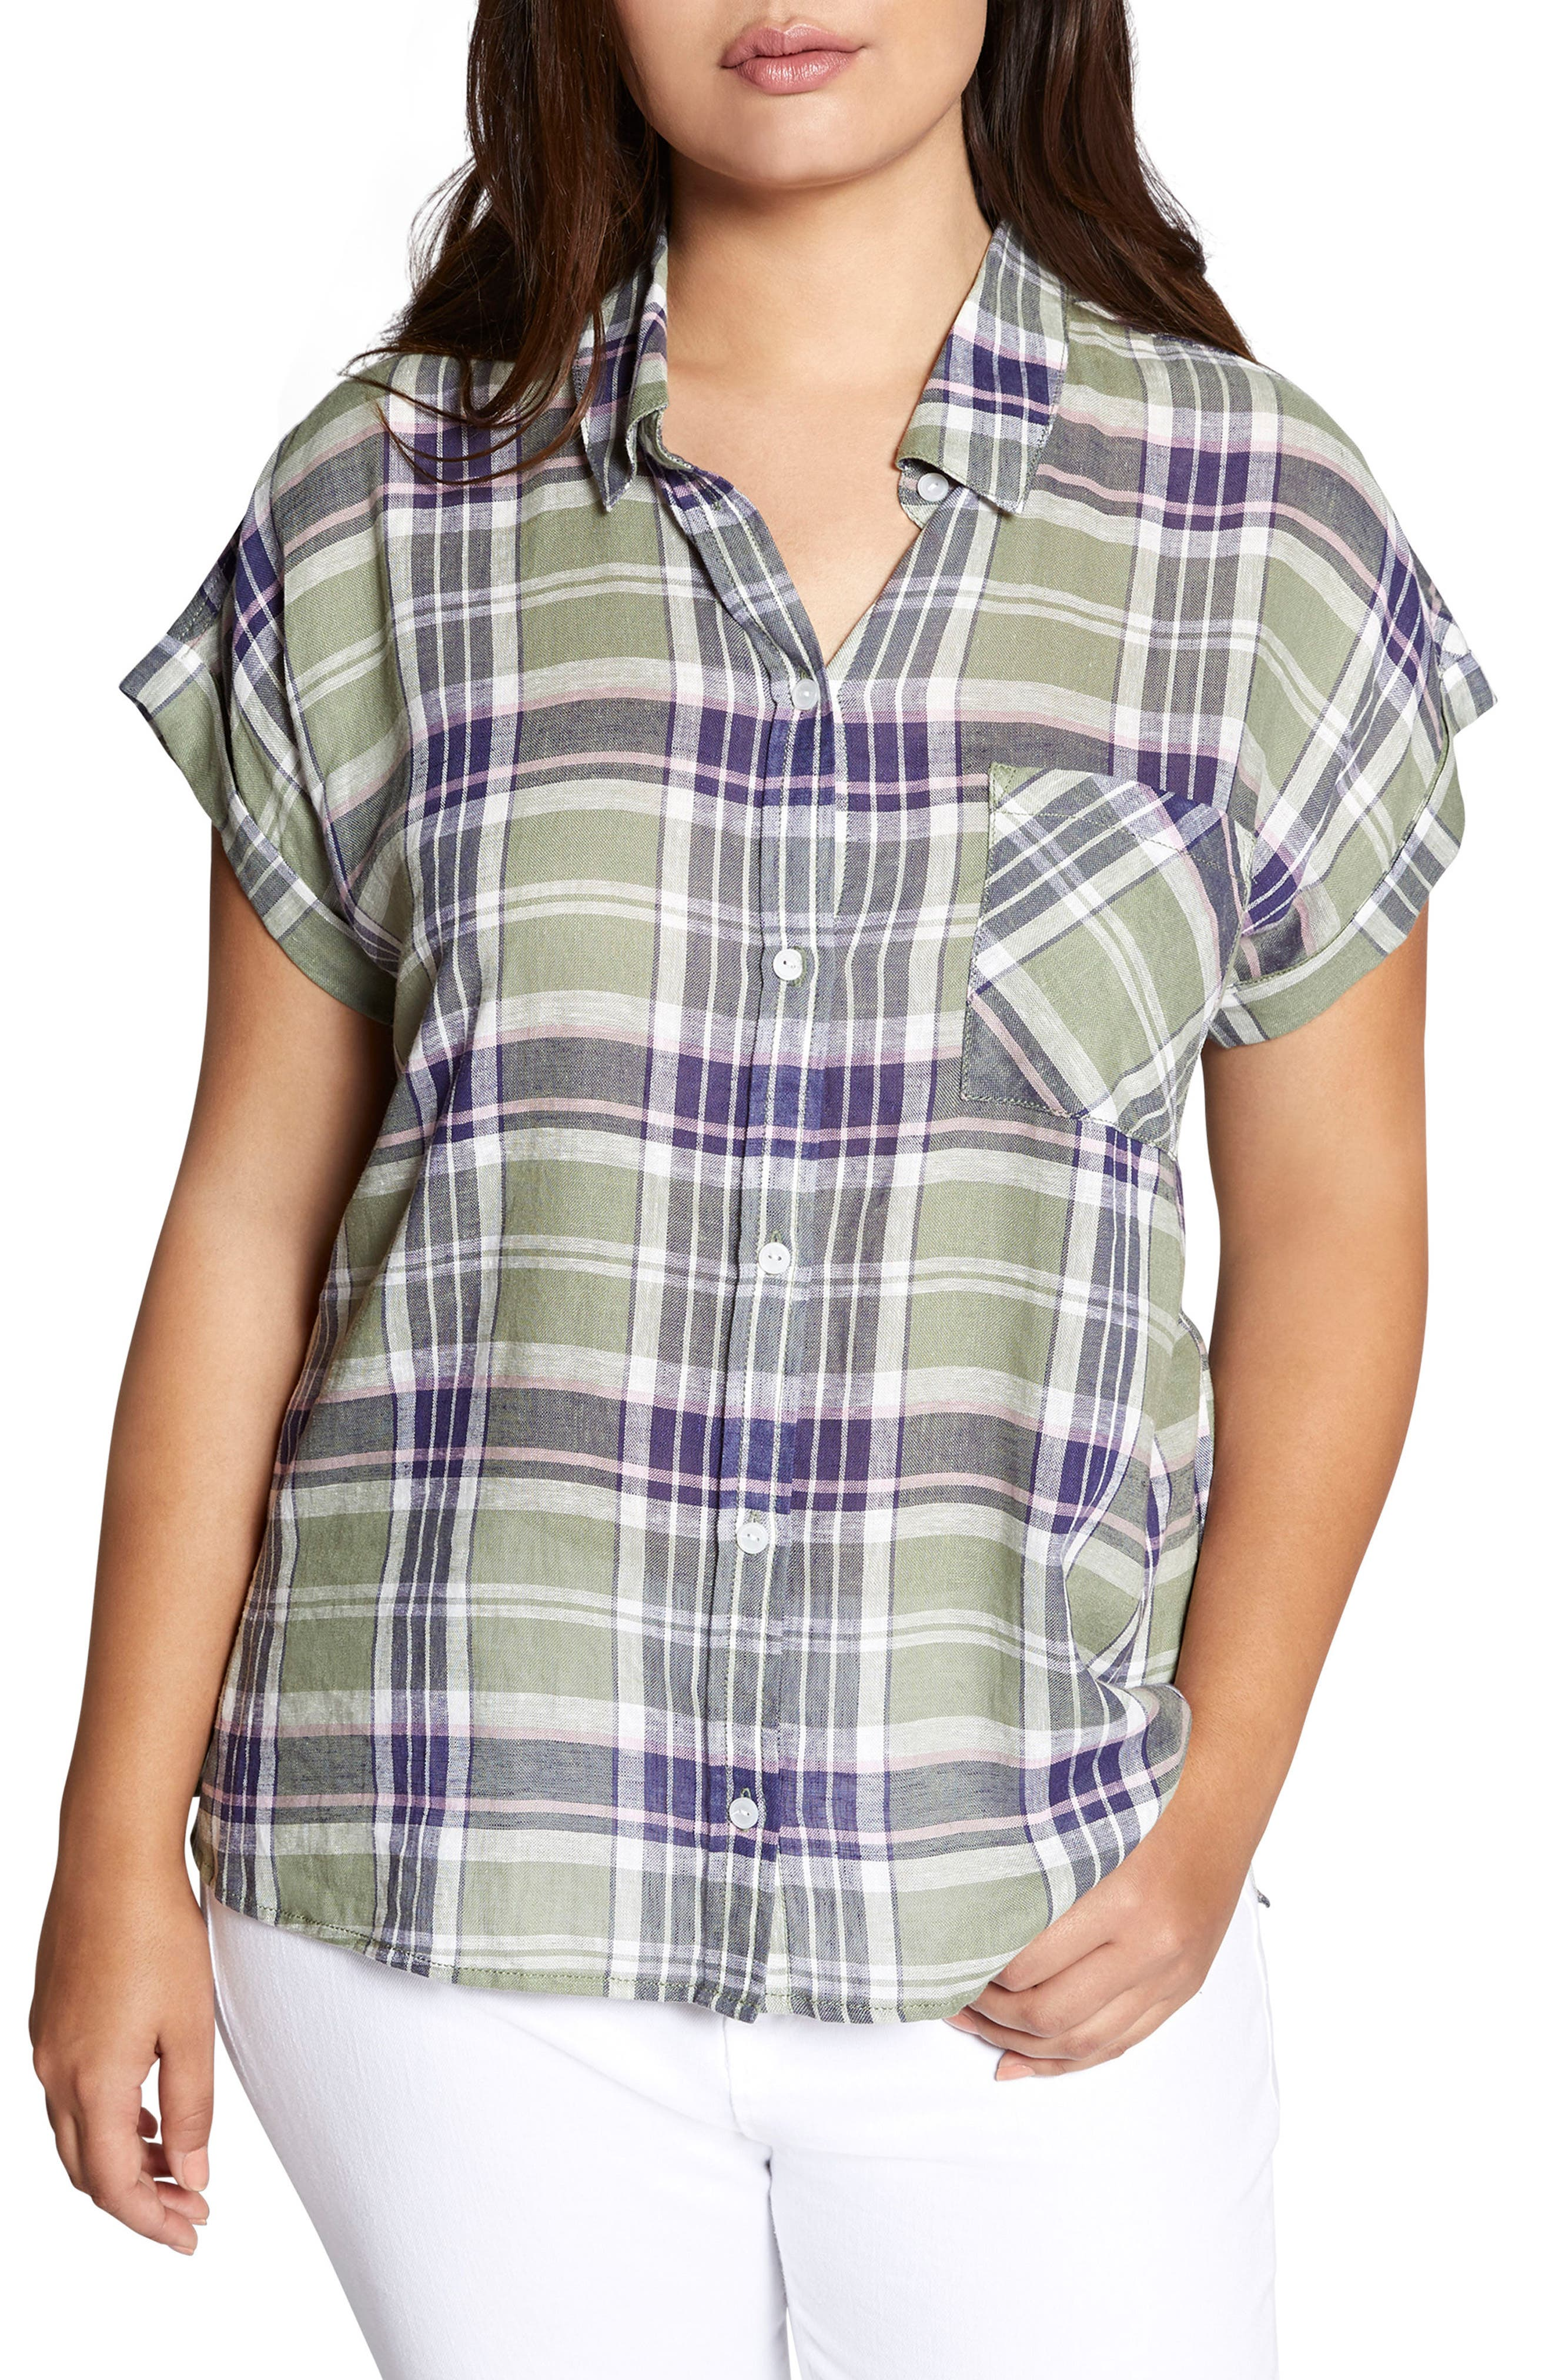 SANCTUARY, Mod Short Sleeve Boyfriend Shirt, Main thumbnail 1, color, 658